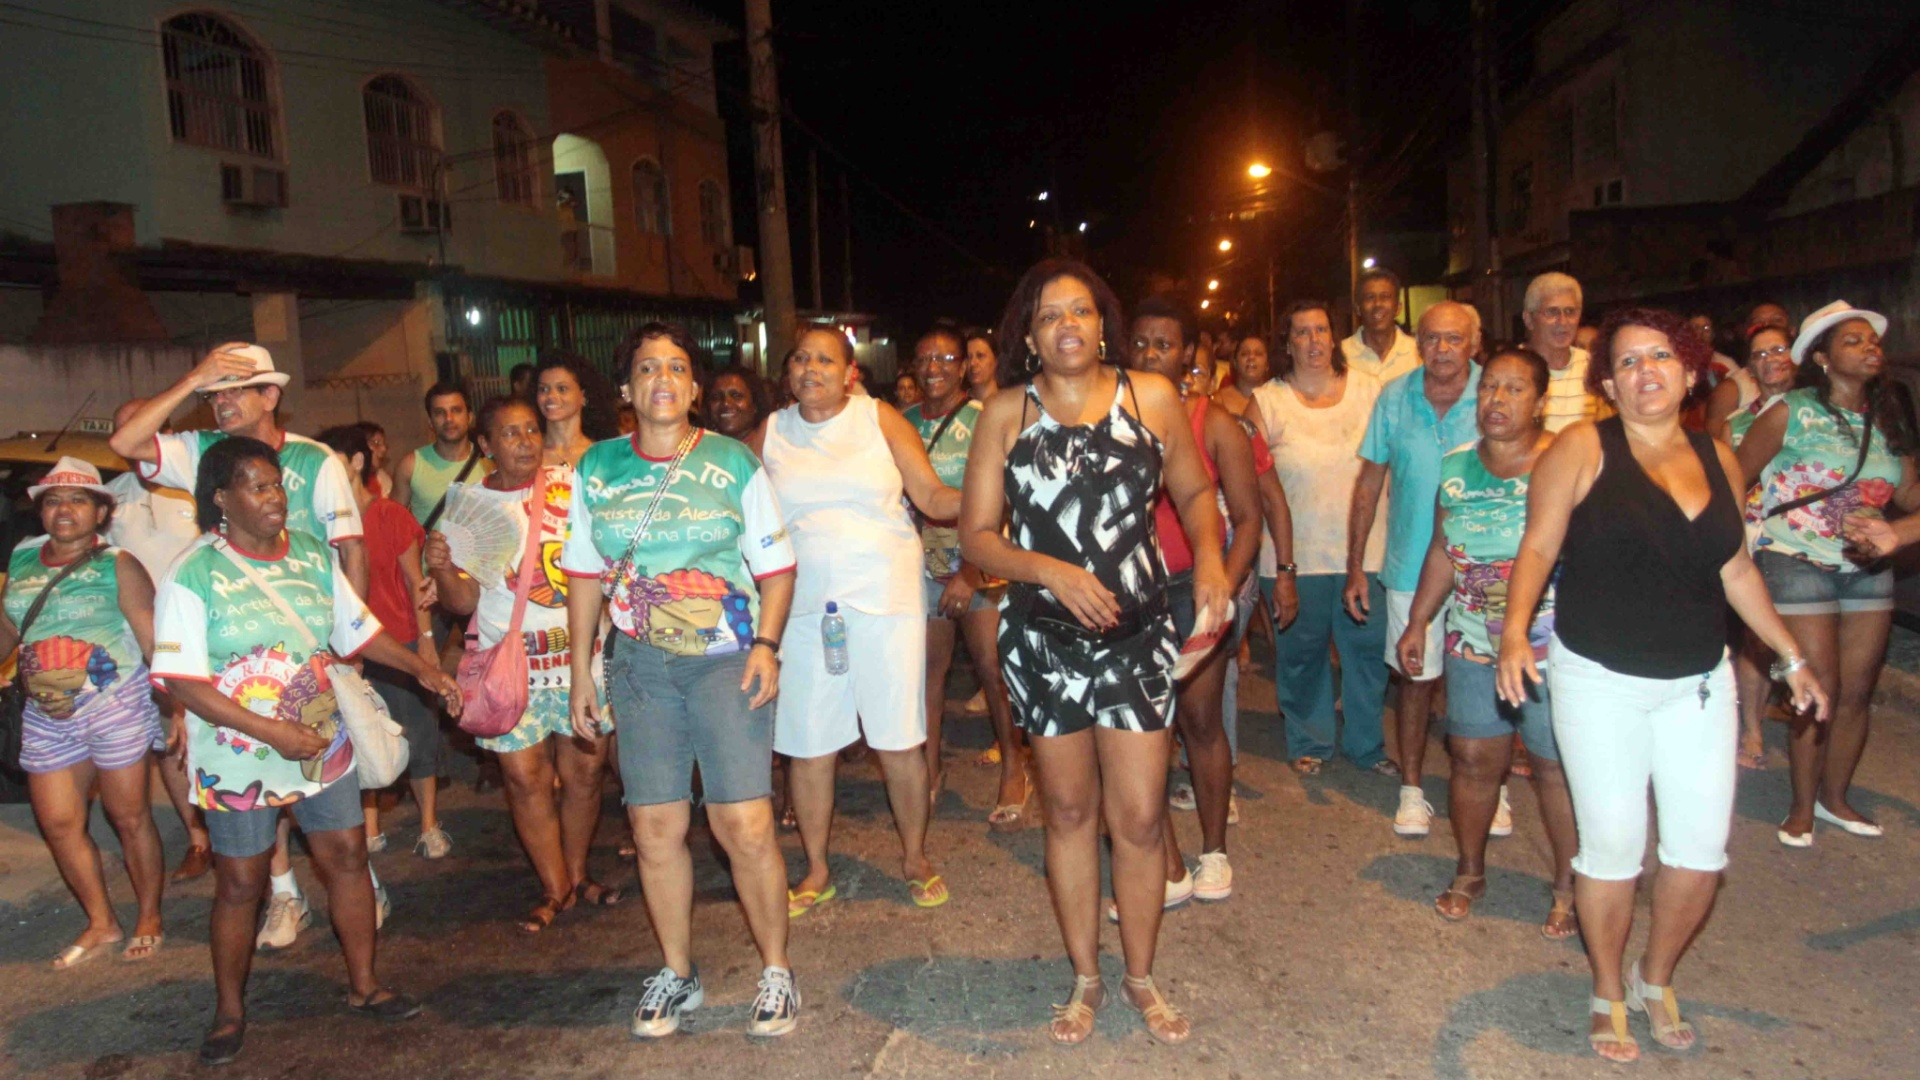 A Renascer de Jacarepagu promoveu na tera-feira (24/01/12) ensaio de rua no Rio de Janeiro.